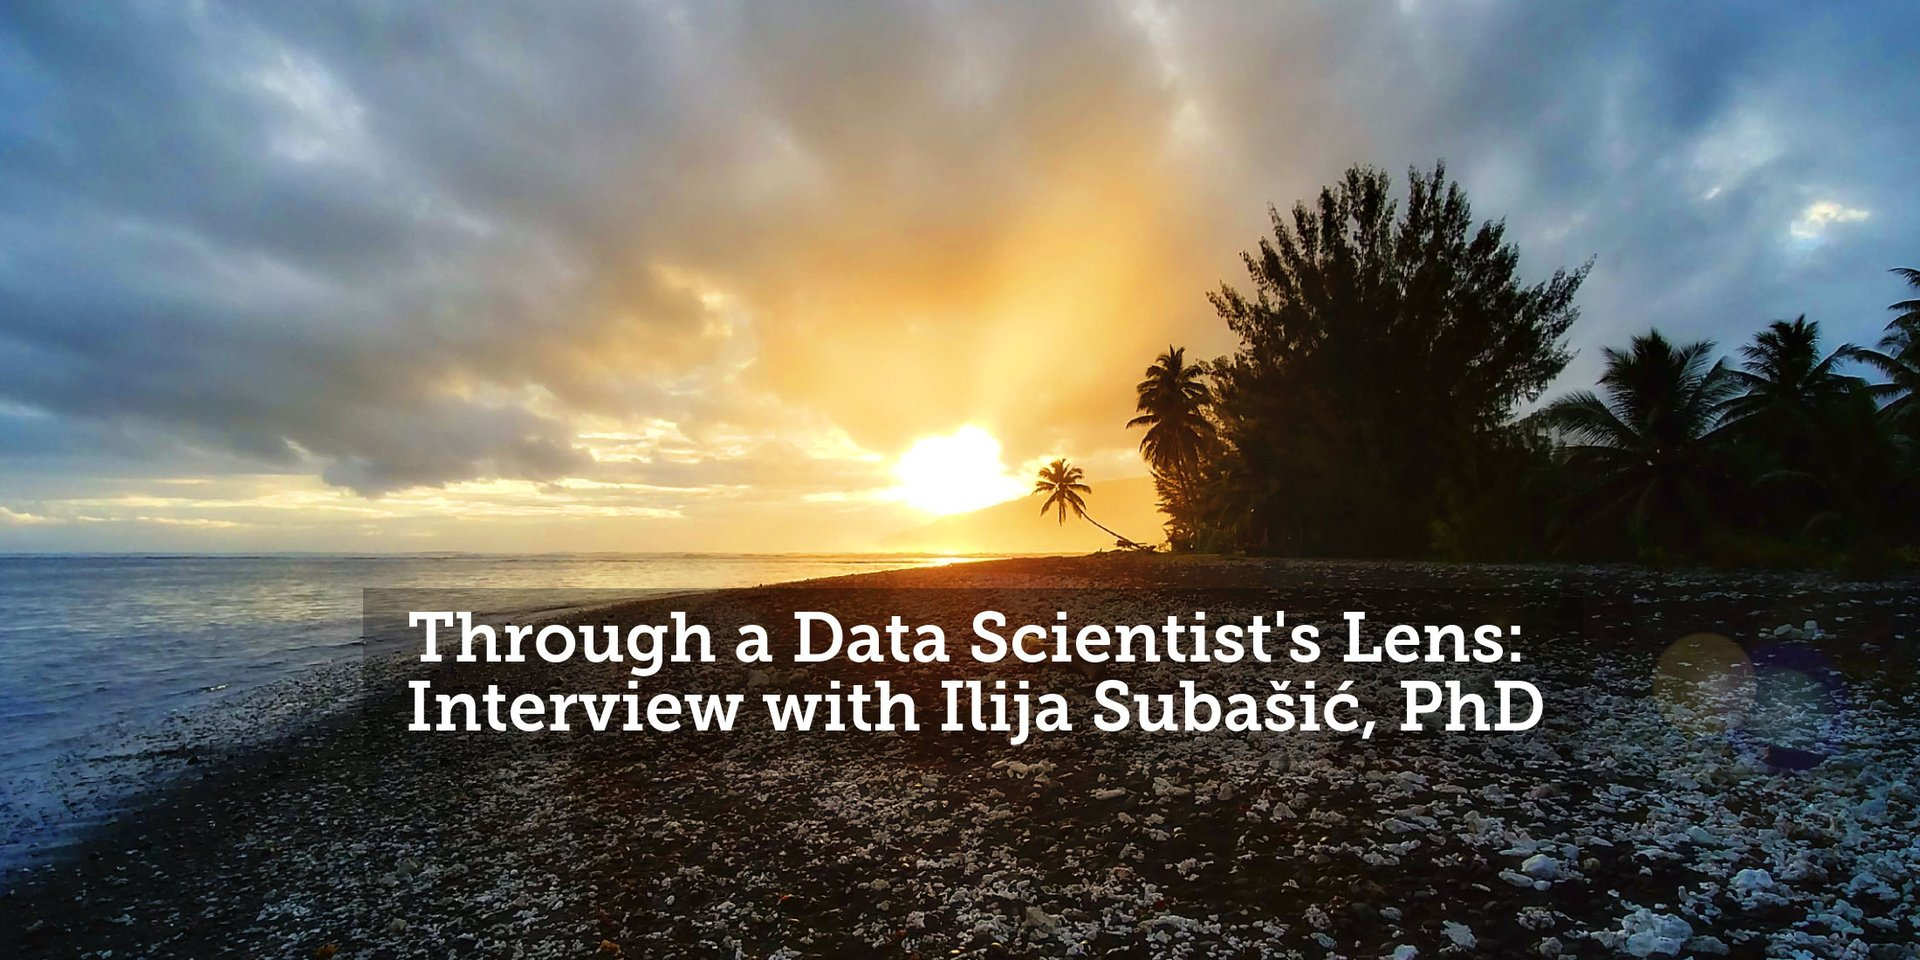 Through a Data Scientist's Lens: Interview with Ilija Subašić, PhD.